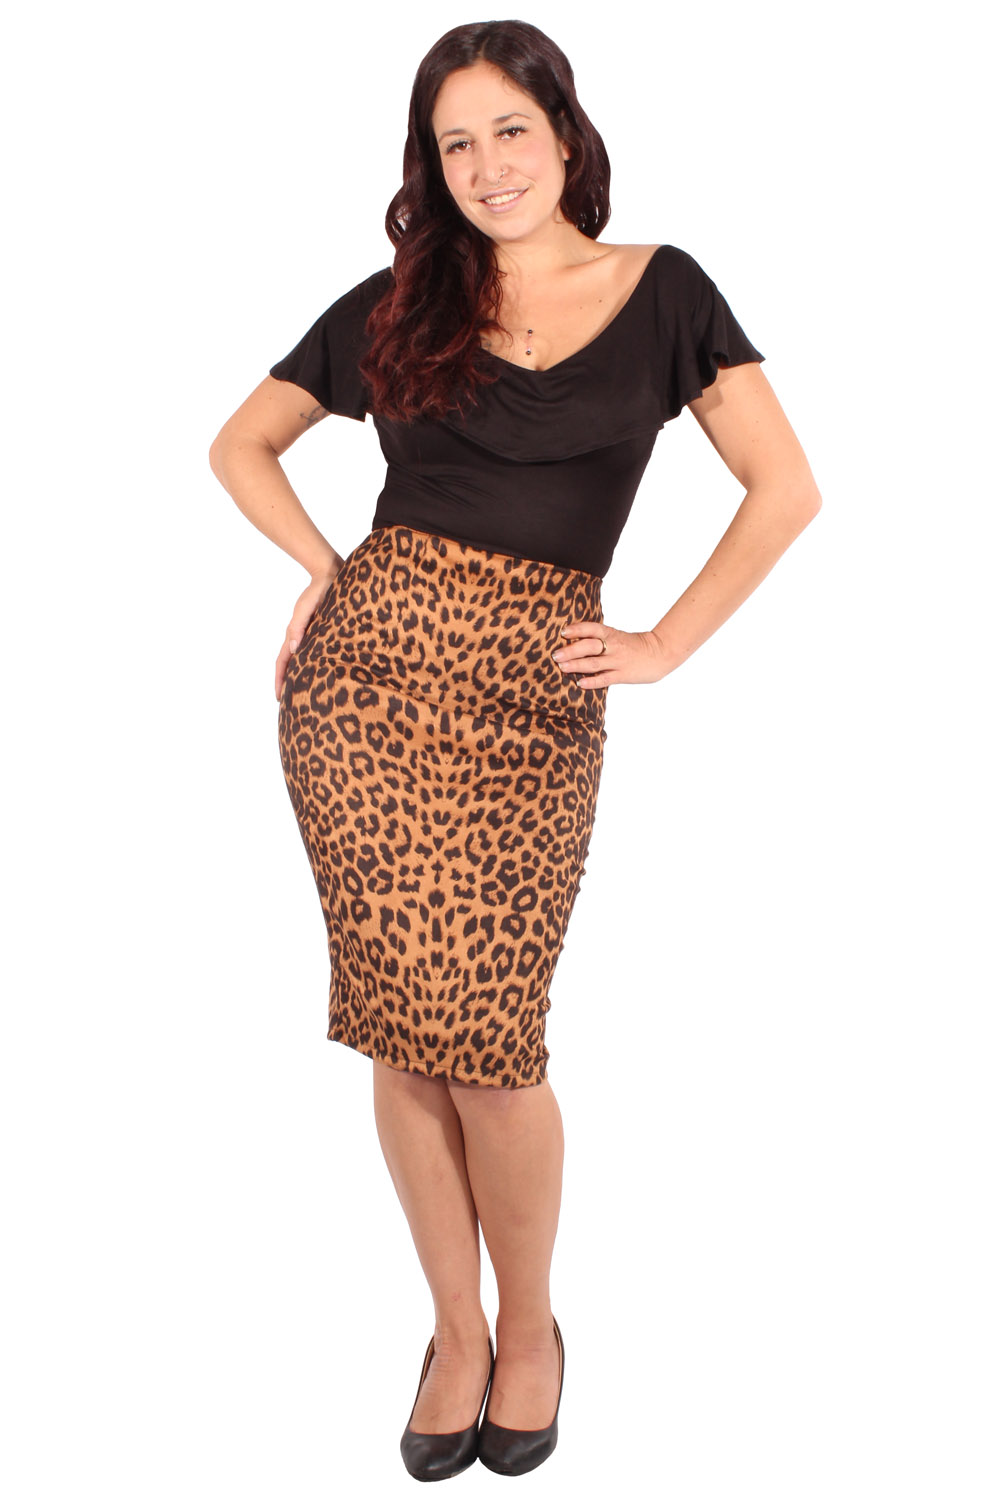 Leo pin up rockabilly Leoparden Pencil Rock retro Bleistiftrock